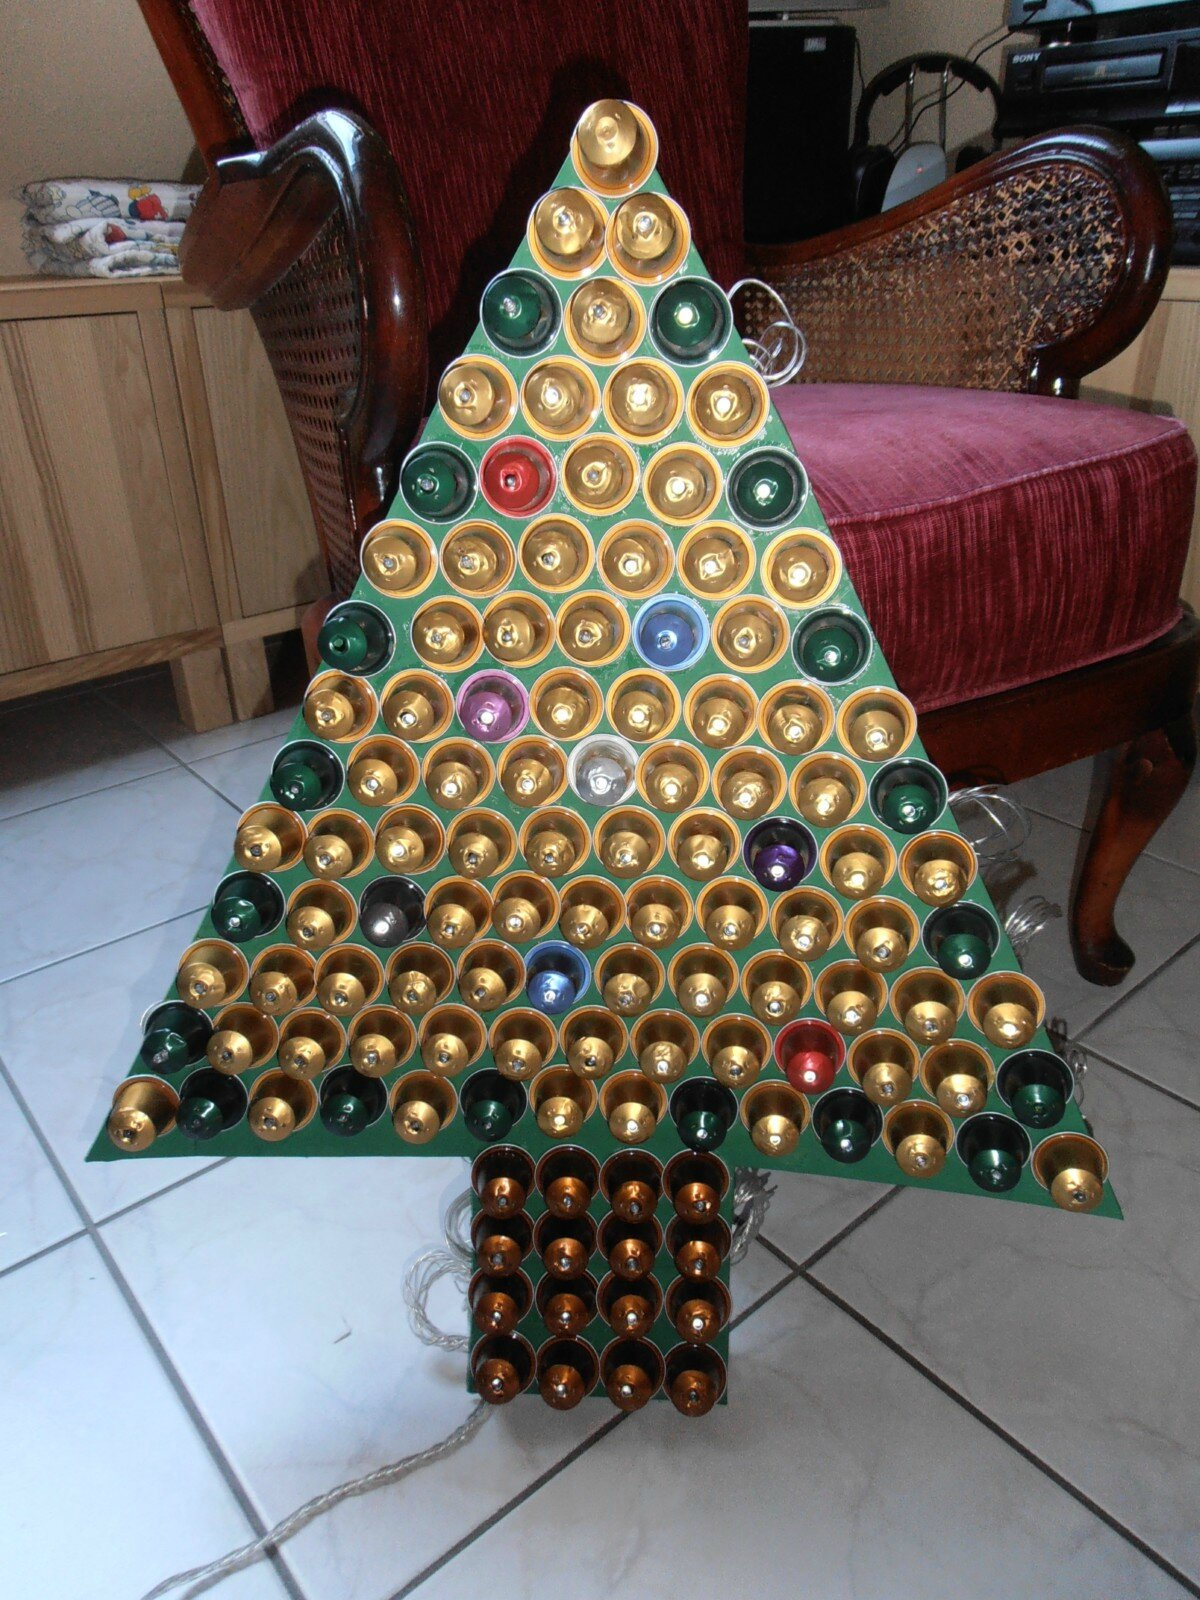 Fabulous Sapin de Noël en capsules de Nespresso - Brico-déco-couture and co IS05